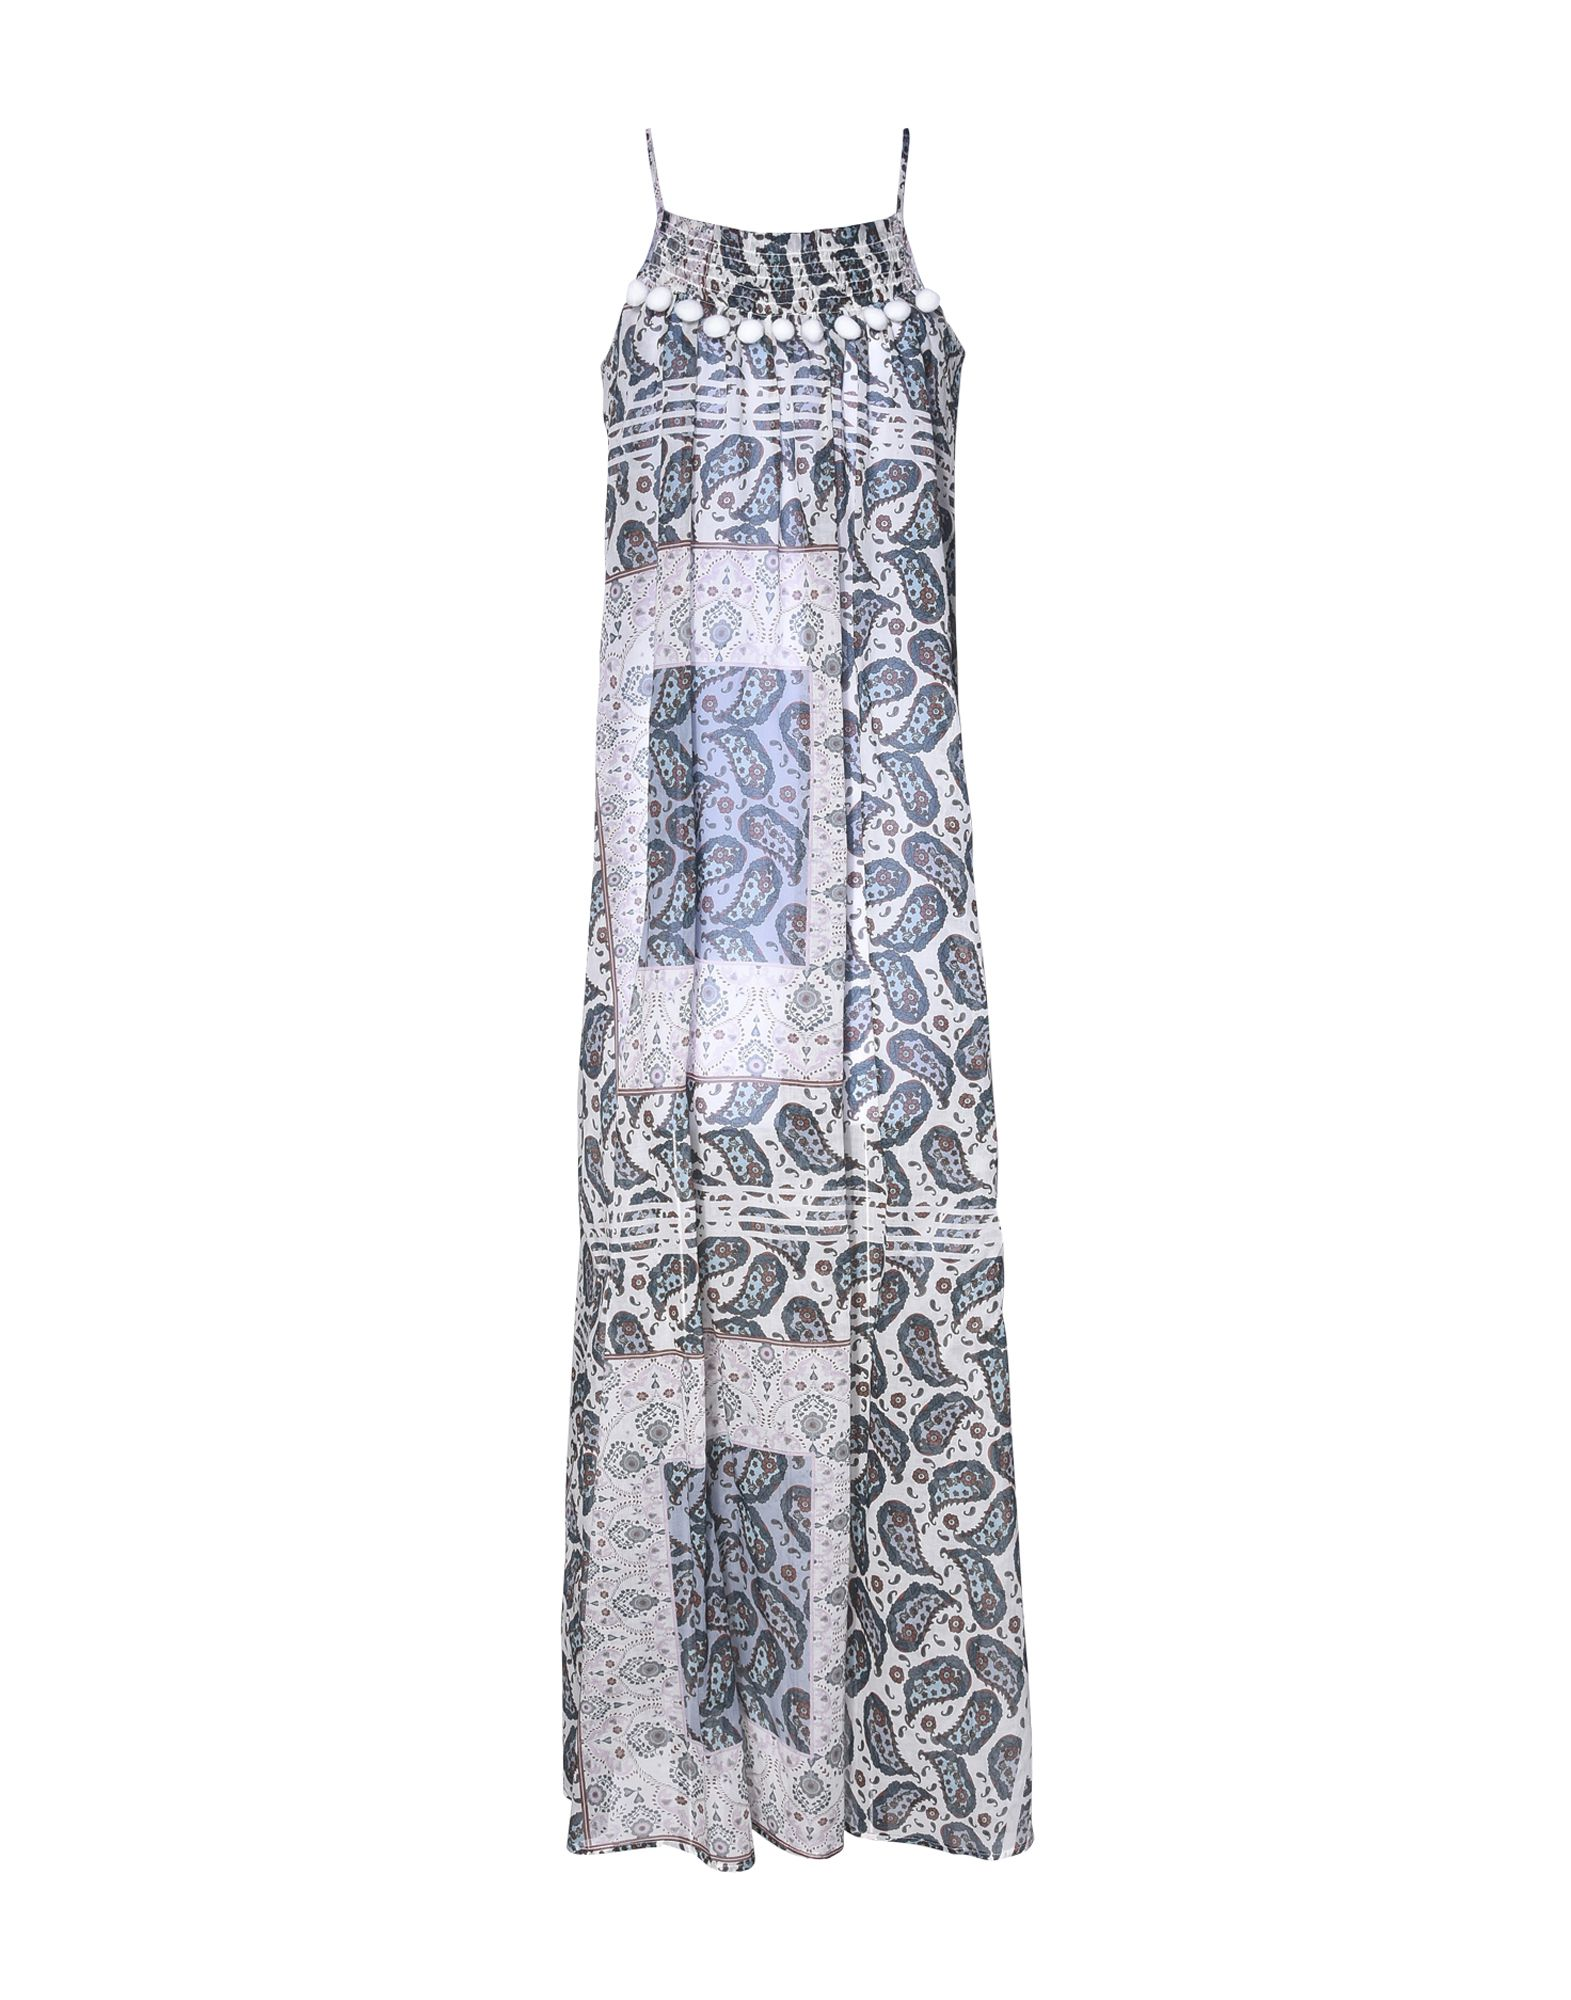 Long Dresses For Women Online Sale Exclusive Prices You Yoox Jolie Clothing Neil Polka Midi Dress